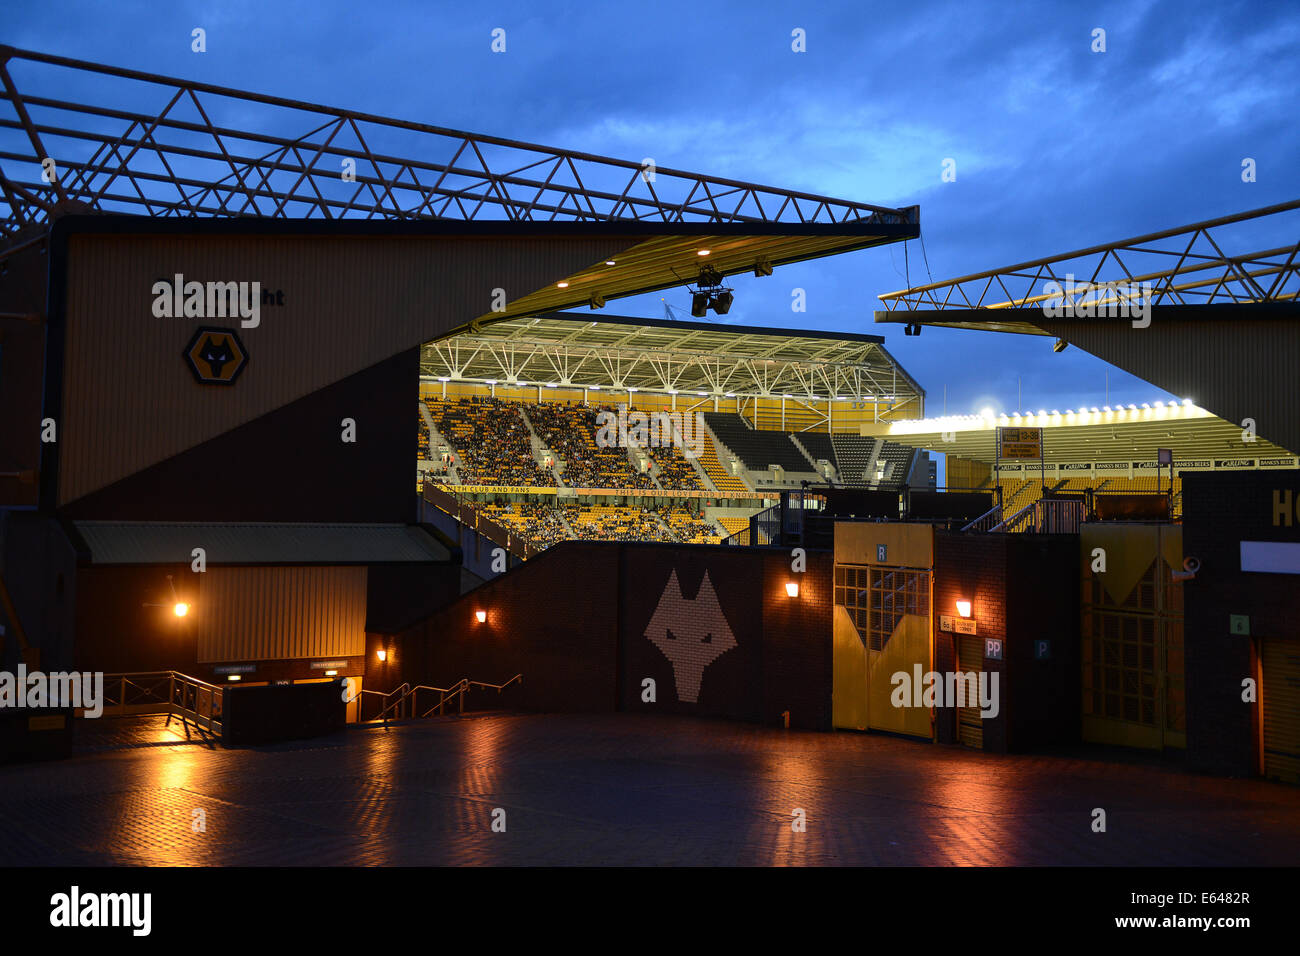 Molineux football stadium home of Wolverhampton Wanderers FC during night match - Stock Image